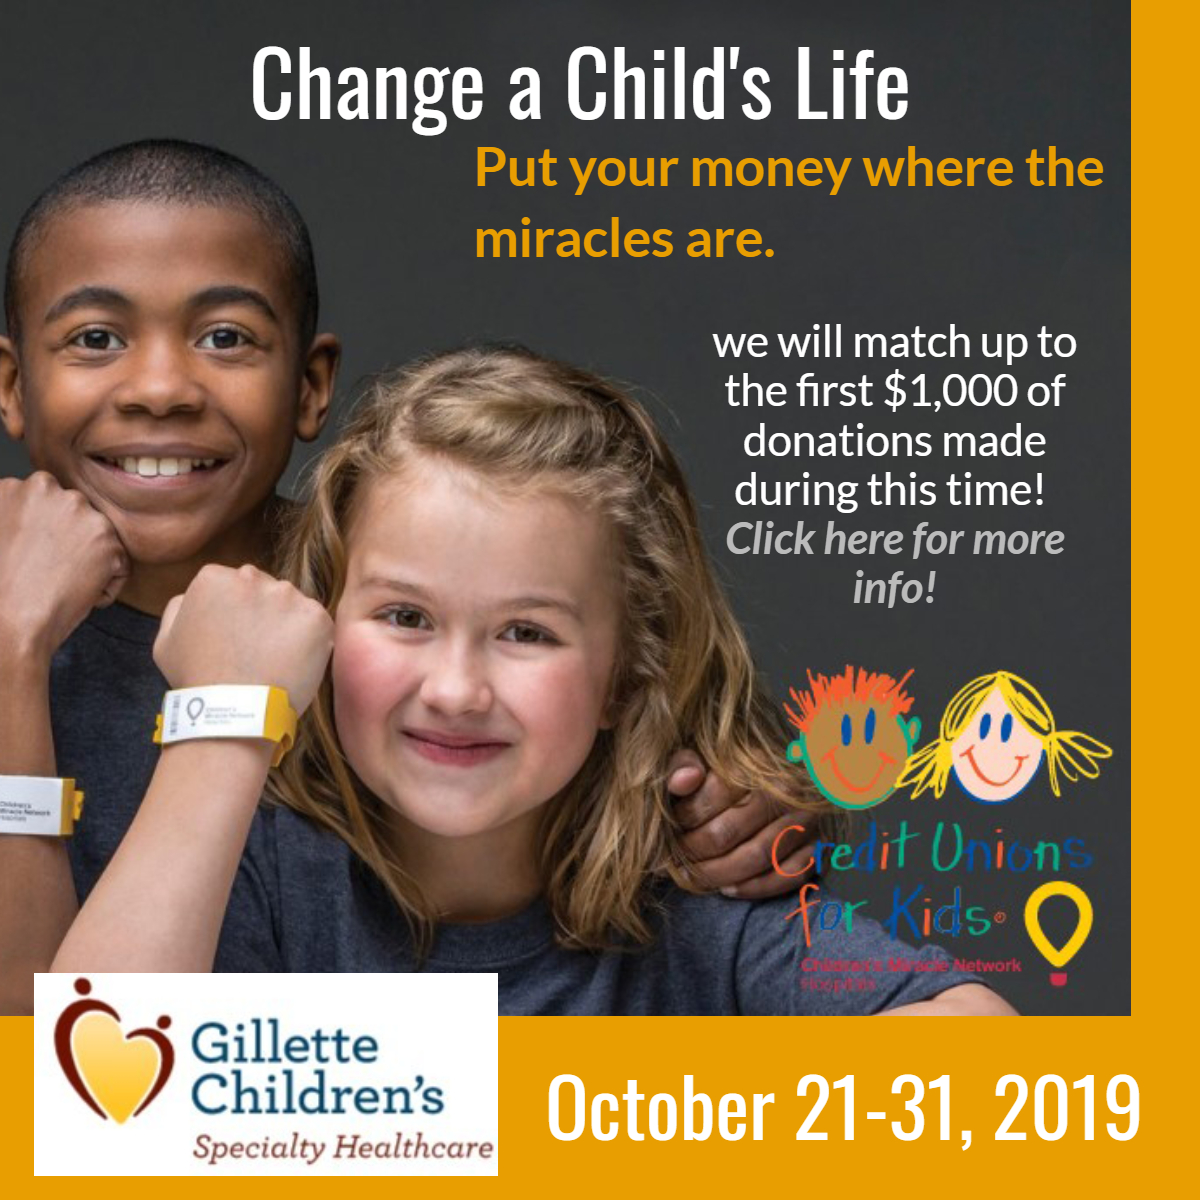 Change a Child's Life Promotional poster asking for members to donate to Gillette Childrens October 21-31, 2019 and NCU would match up to $1000.